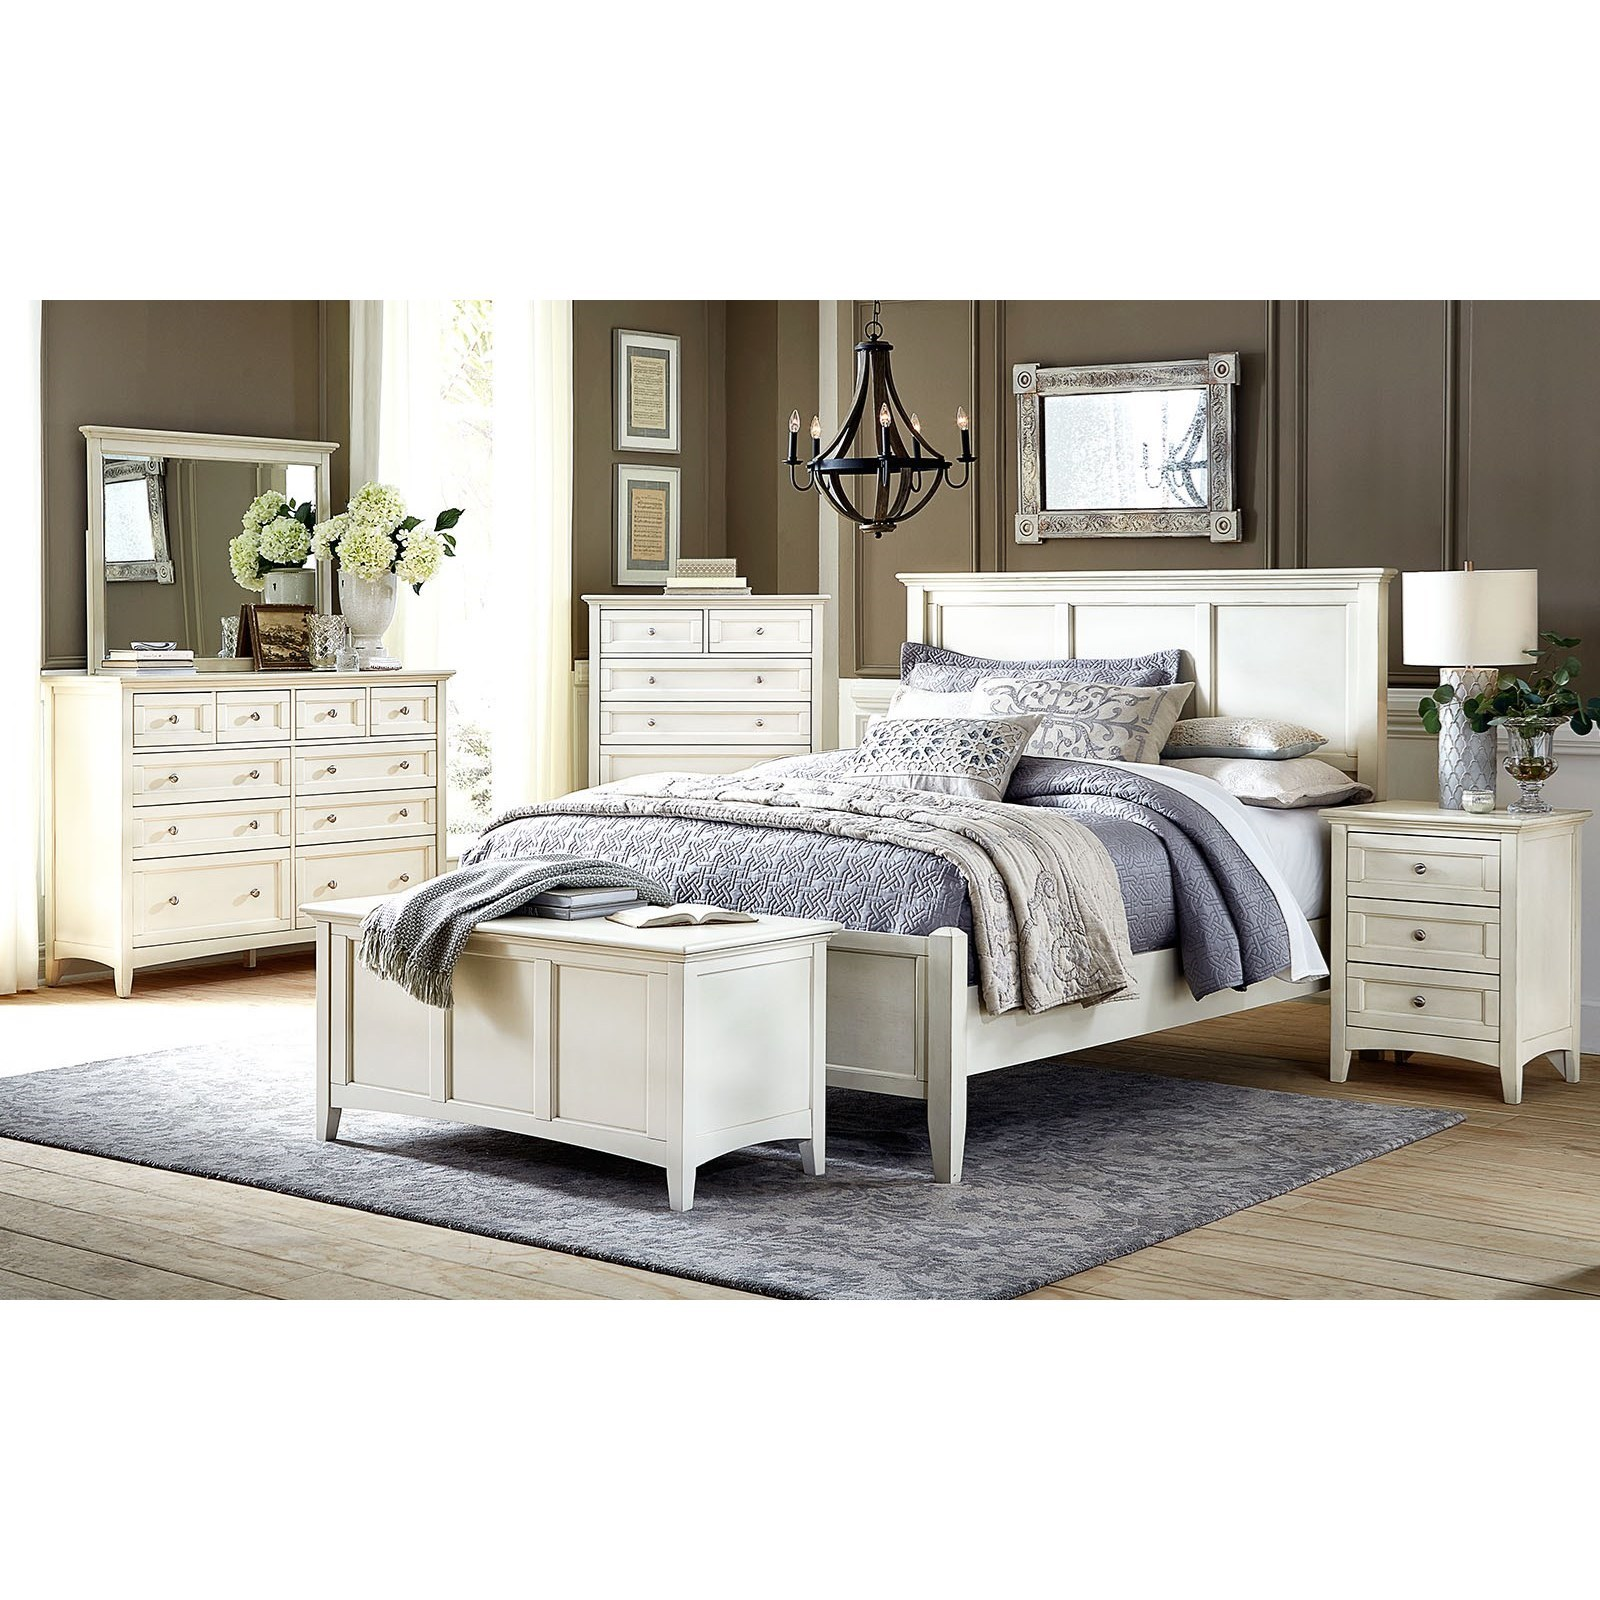 Northlake King Bedroom Group by A-A at Walker's Furniture